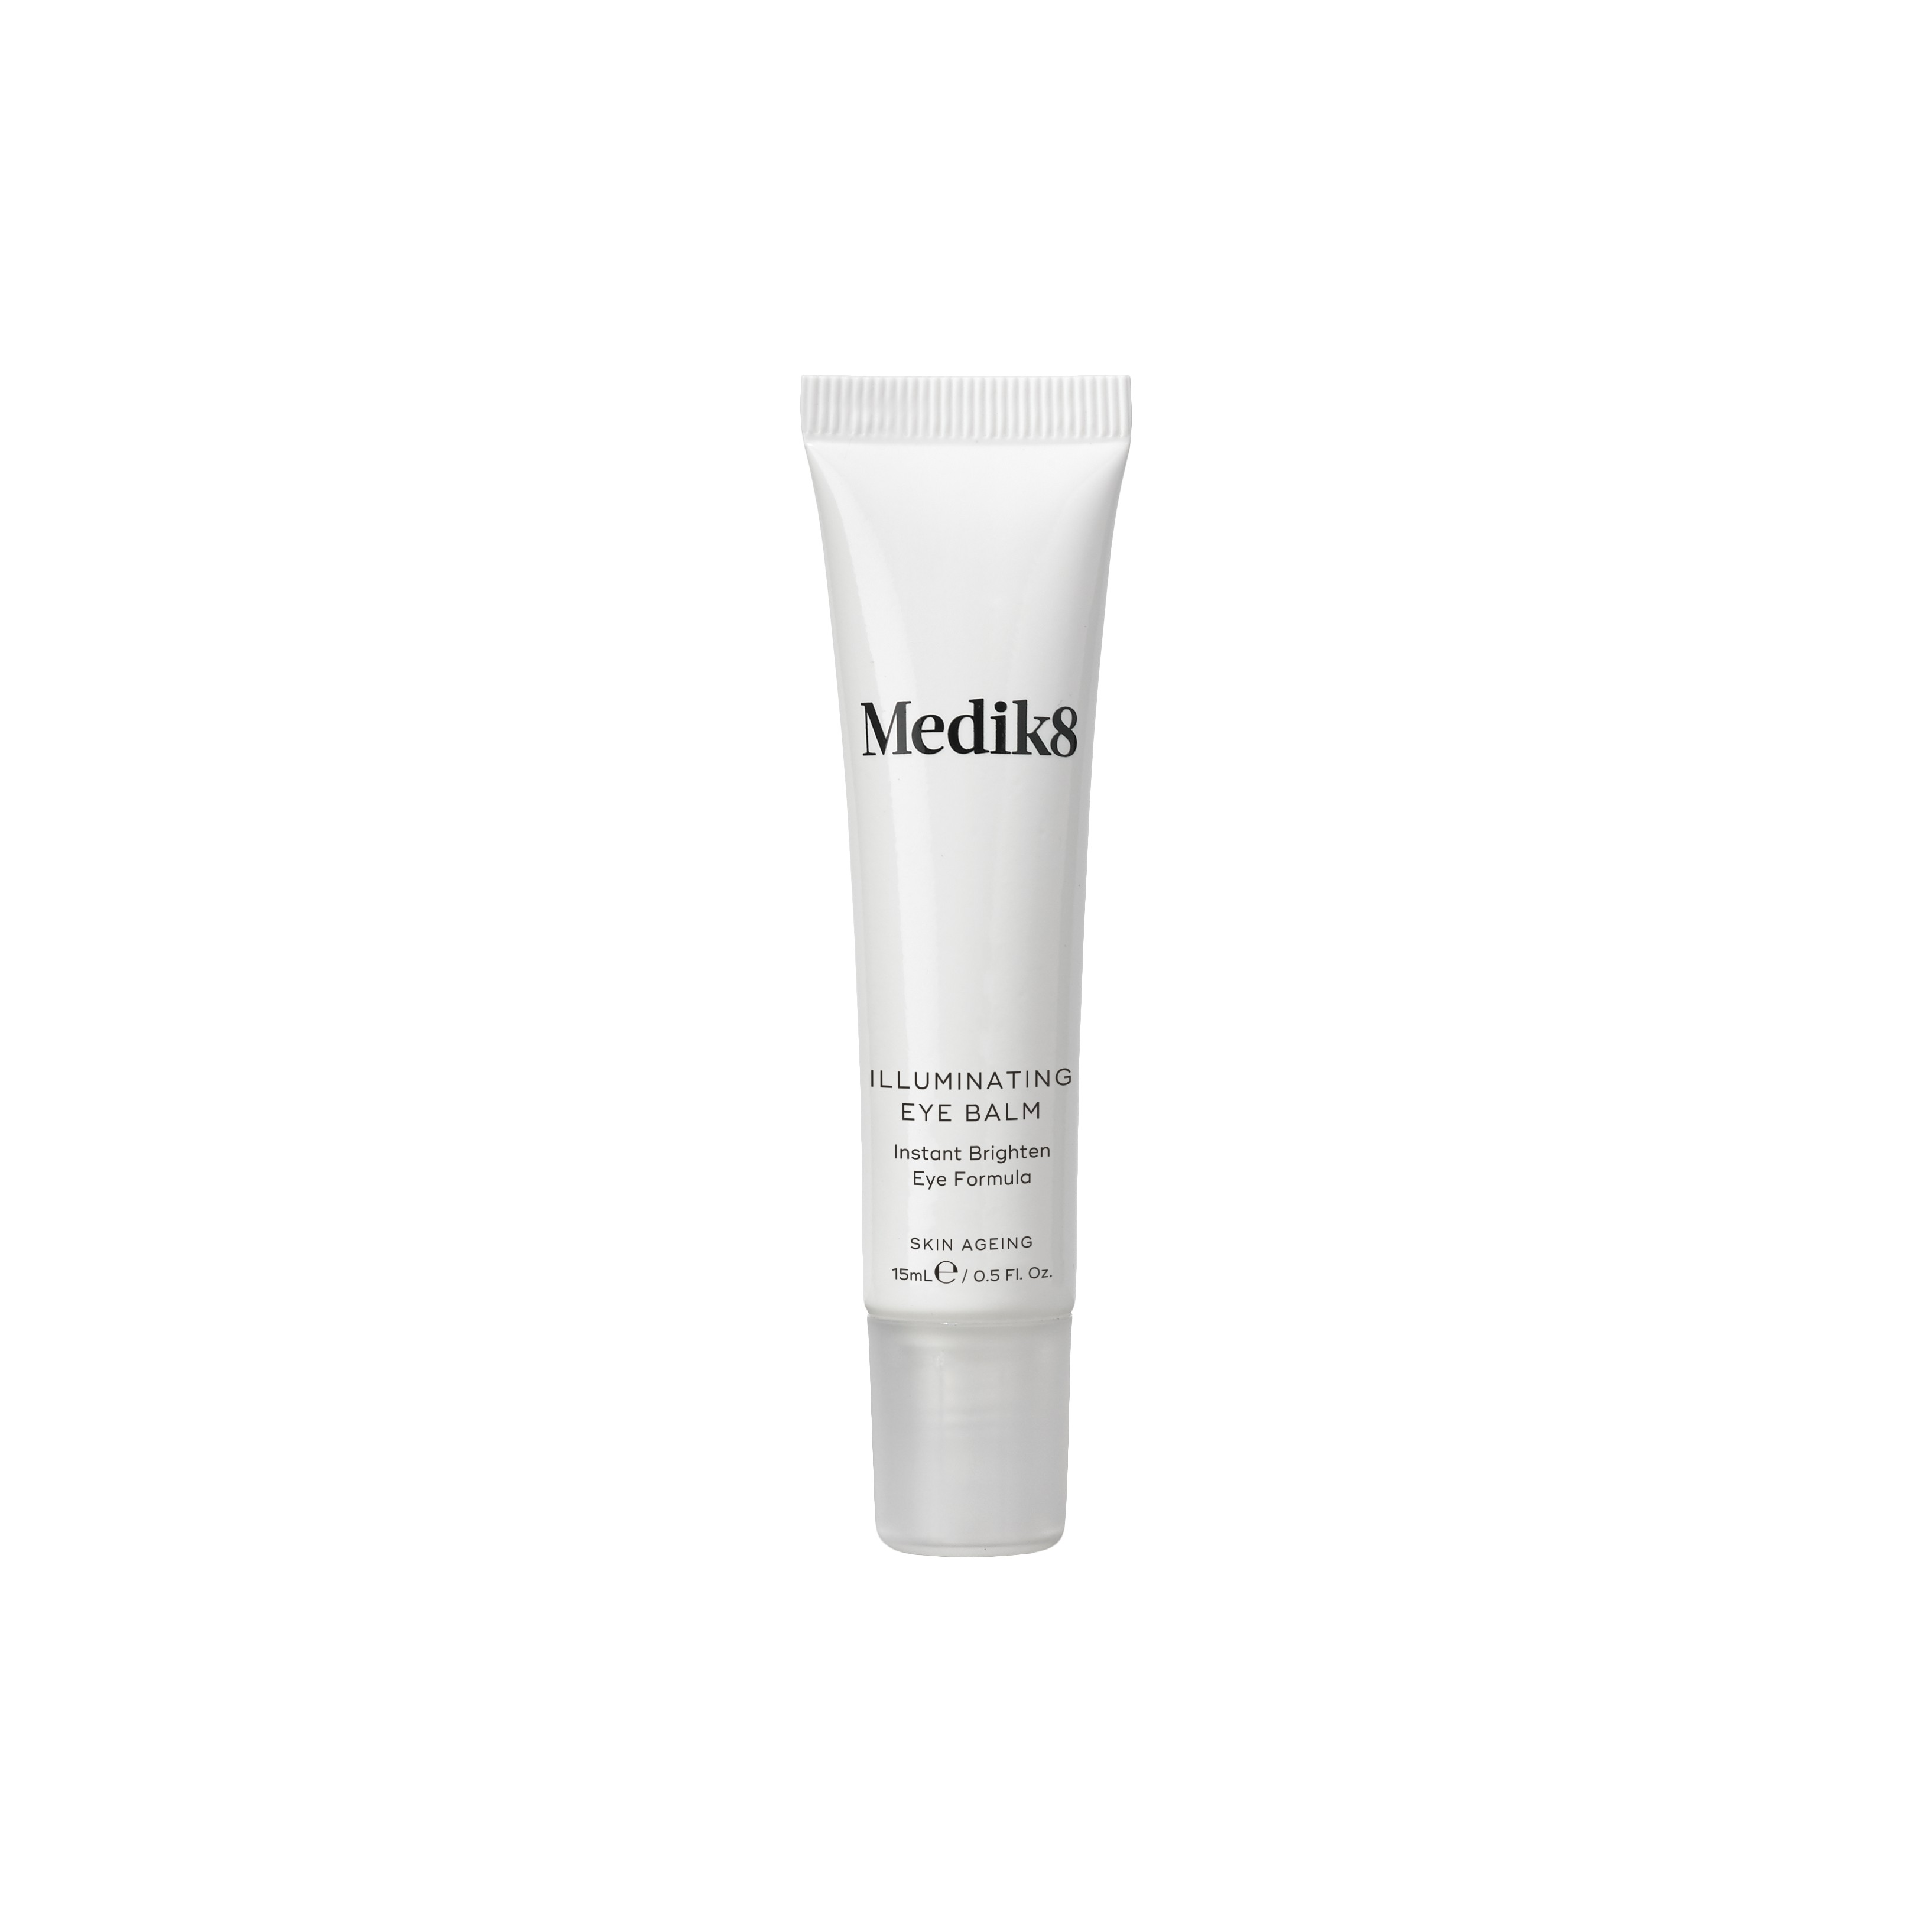 Illuminating Eye Balm